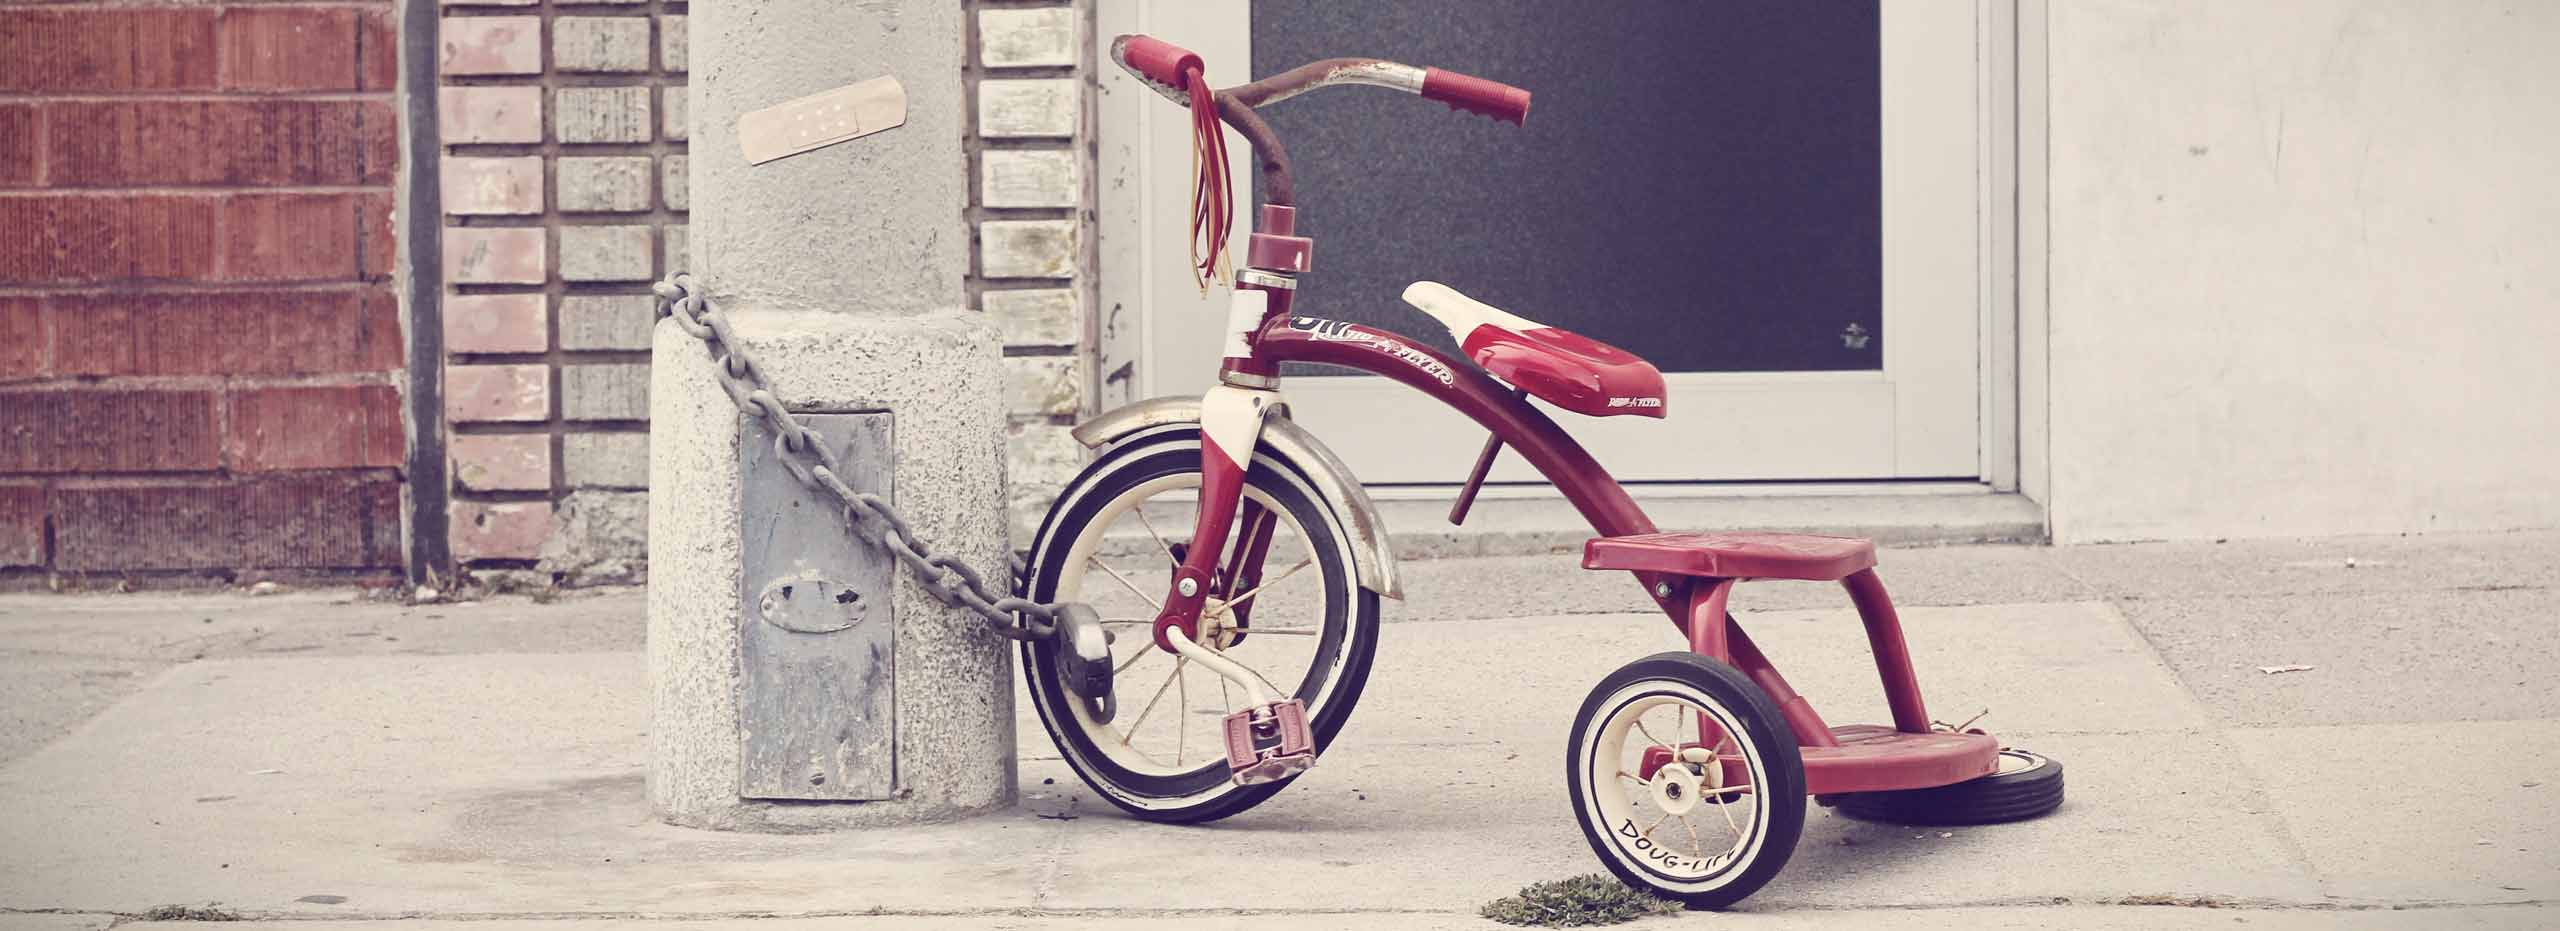 A child's tricycle is locked to a streetlamp in a city environment